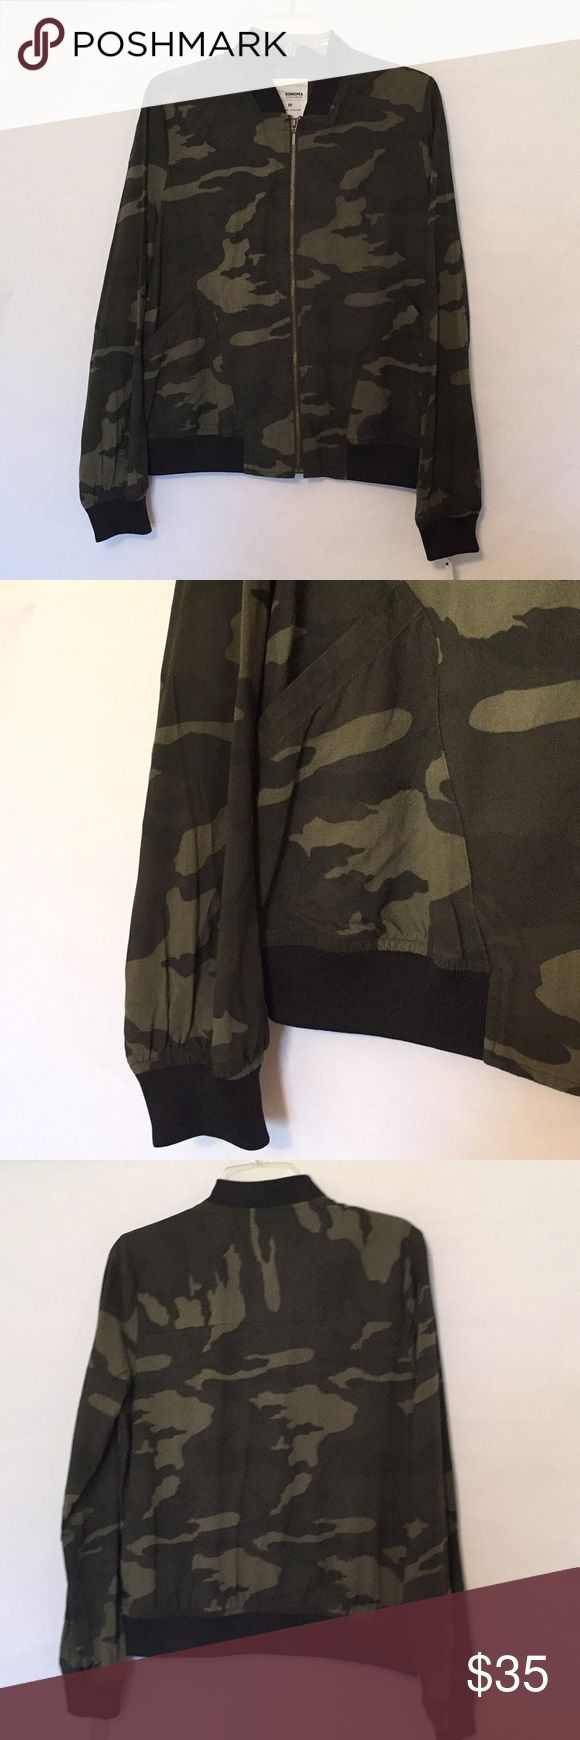 """🆕 Camo bomber jacket Sonoma green camo bomber jacket, black stretch cuffs, neck and bottom. Zip front with brass hardware, two front pockets. Measurement across chest laying flat: 21"""" for Medium, 22"""" for Large. 100% rayon, unlined. Perfect weight for spring/fall. Sonoma Jackets & Coats"""